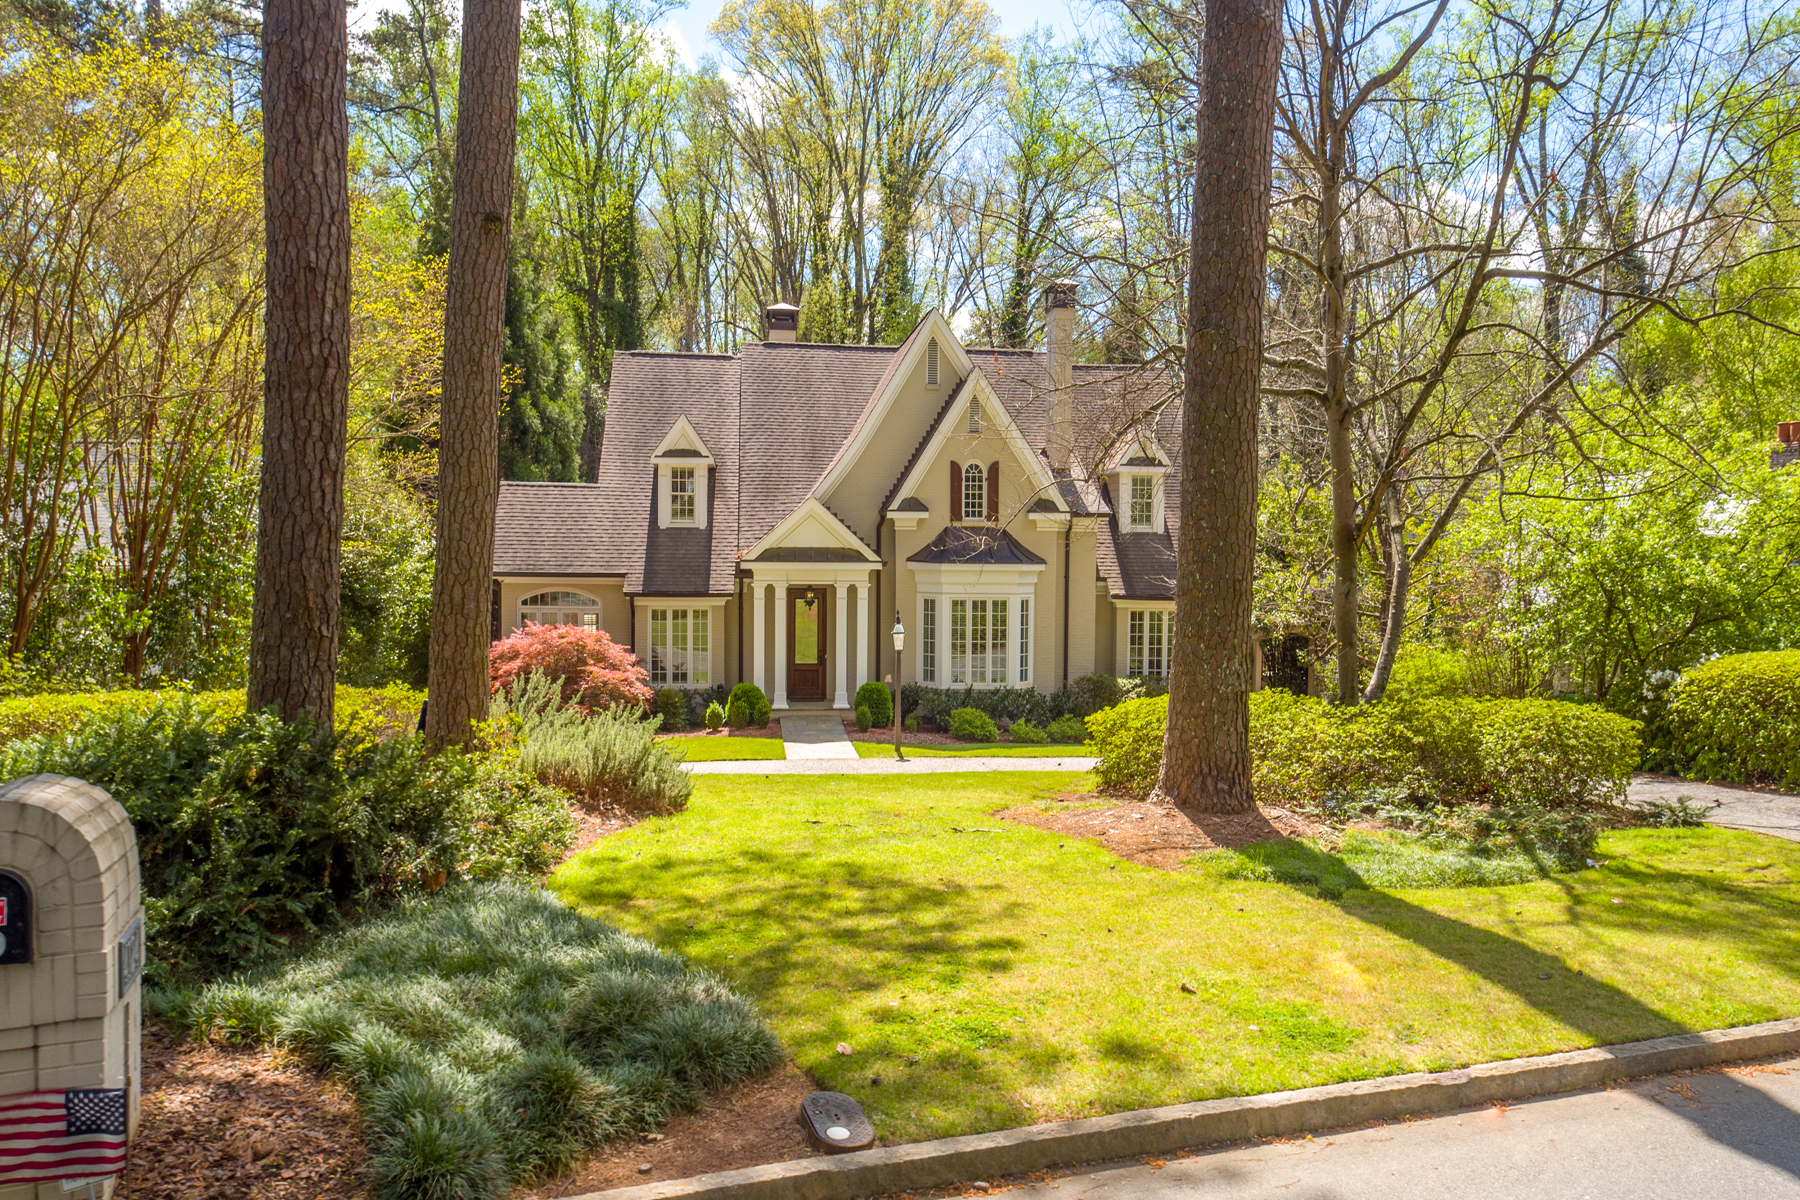 独户住宅 为 销售 在 Gorgeous Home In Ideal Brookhaven Location 4124 Club Drive Brookhaven, 亚特兰大, 乔治亚州, 30319 美国